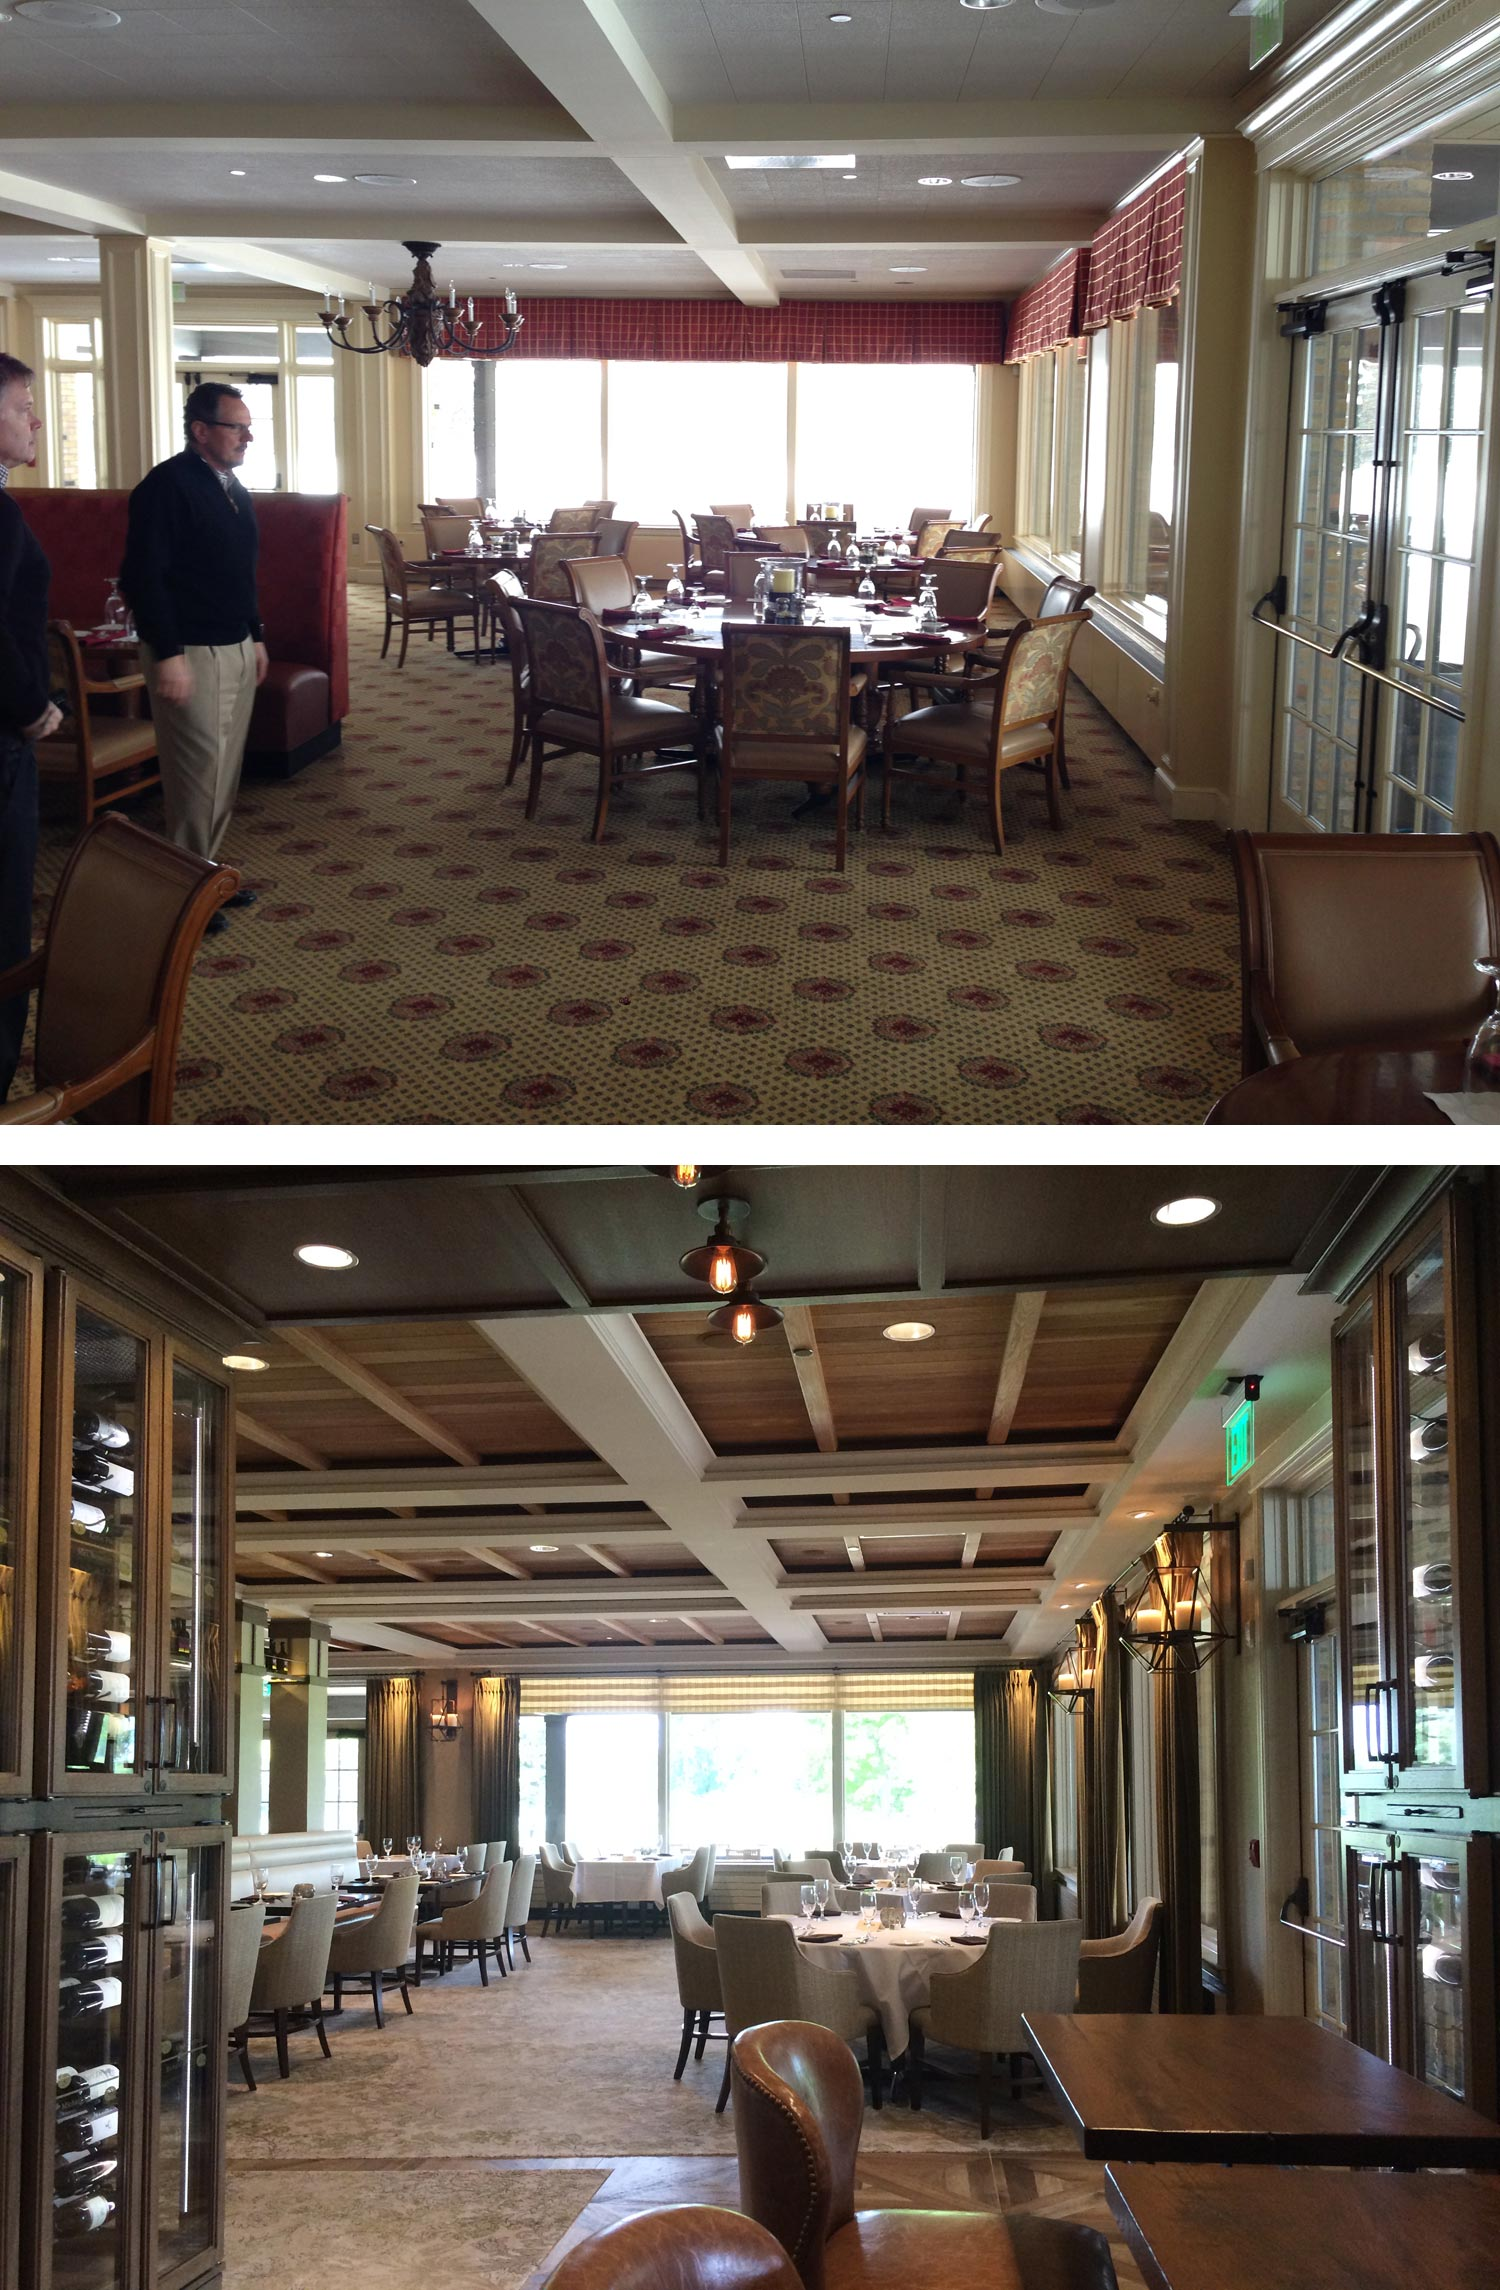 CHCC - dining room before/after